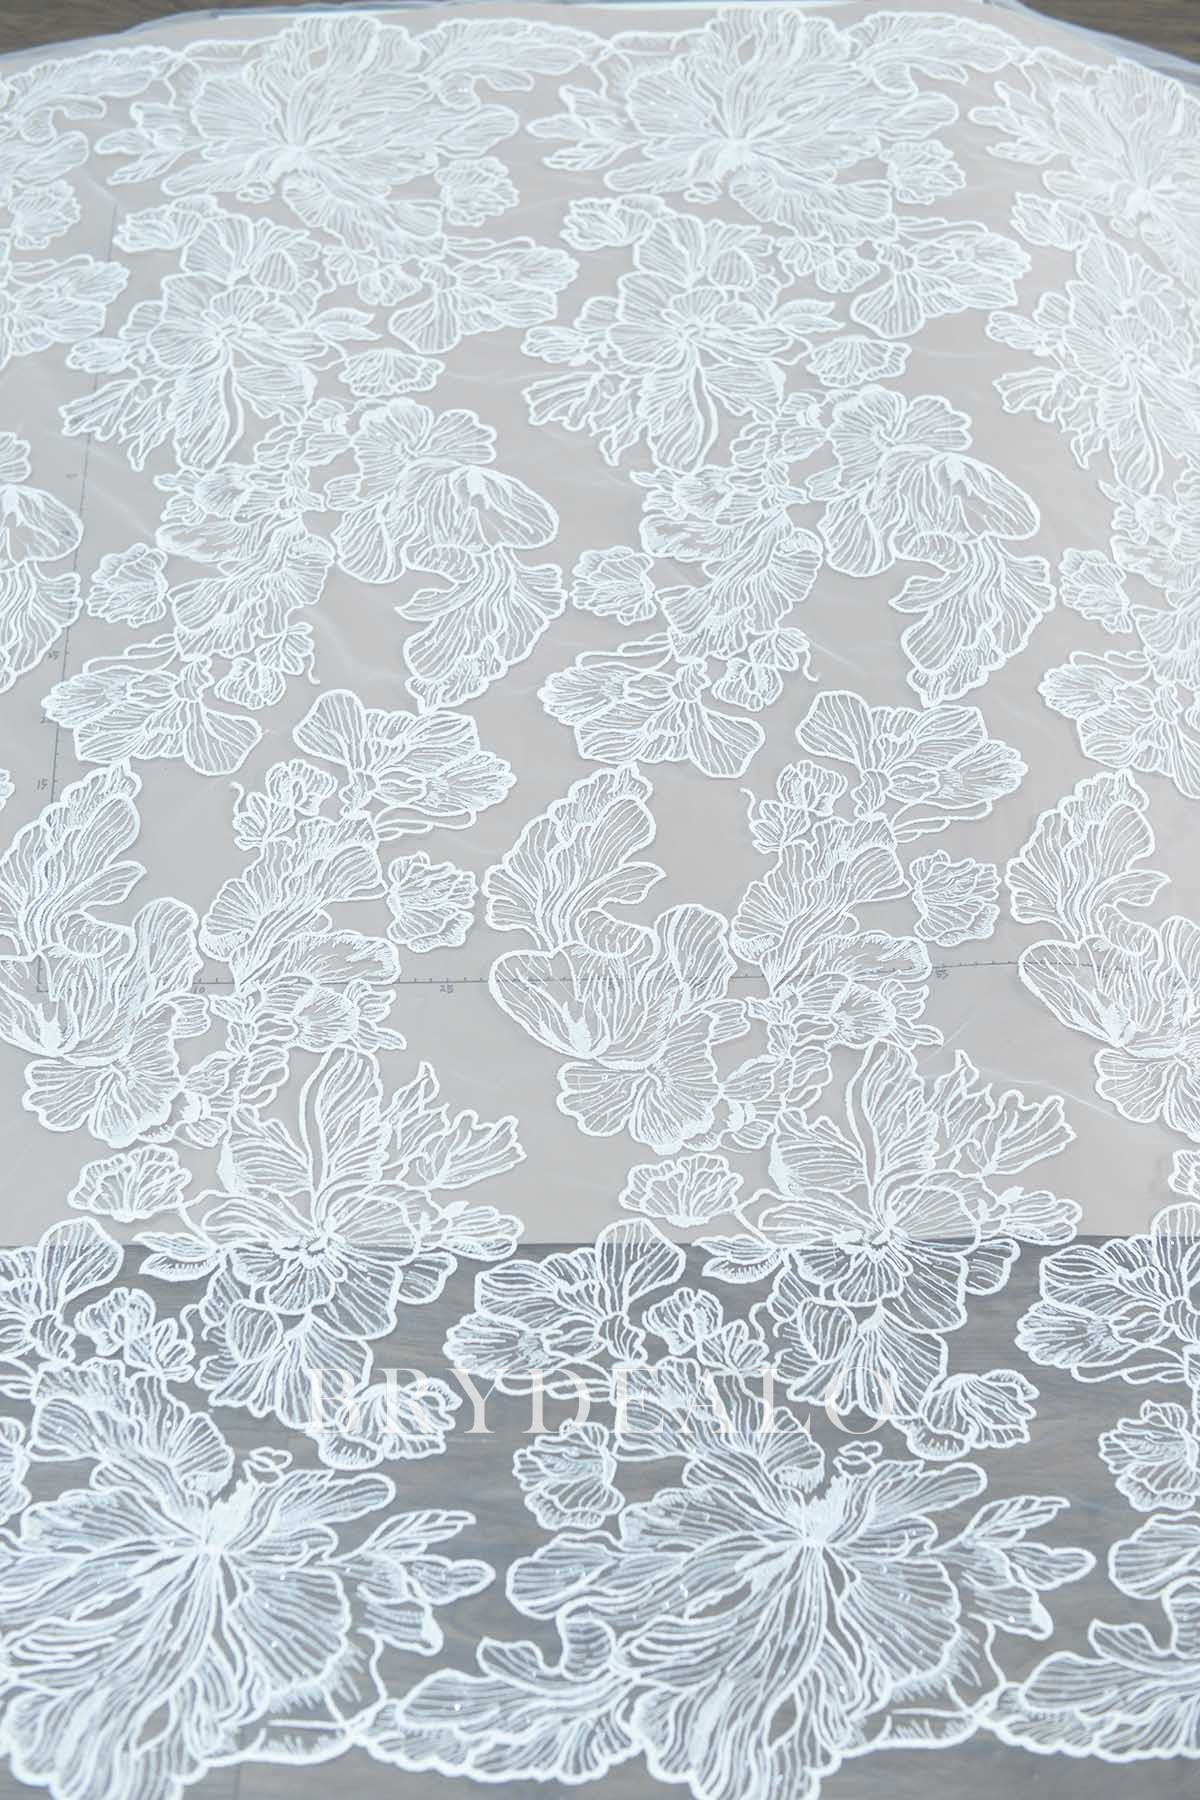 Gleaming Lotus Embroidered Bridal Lace Fabric Brydealo